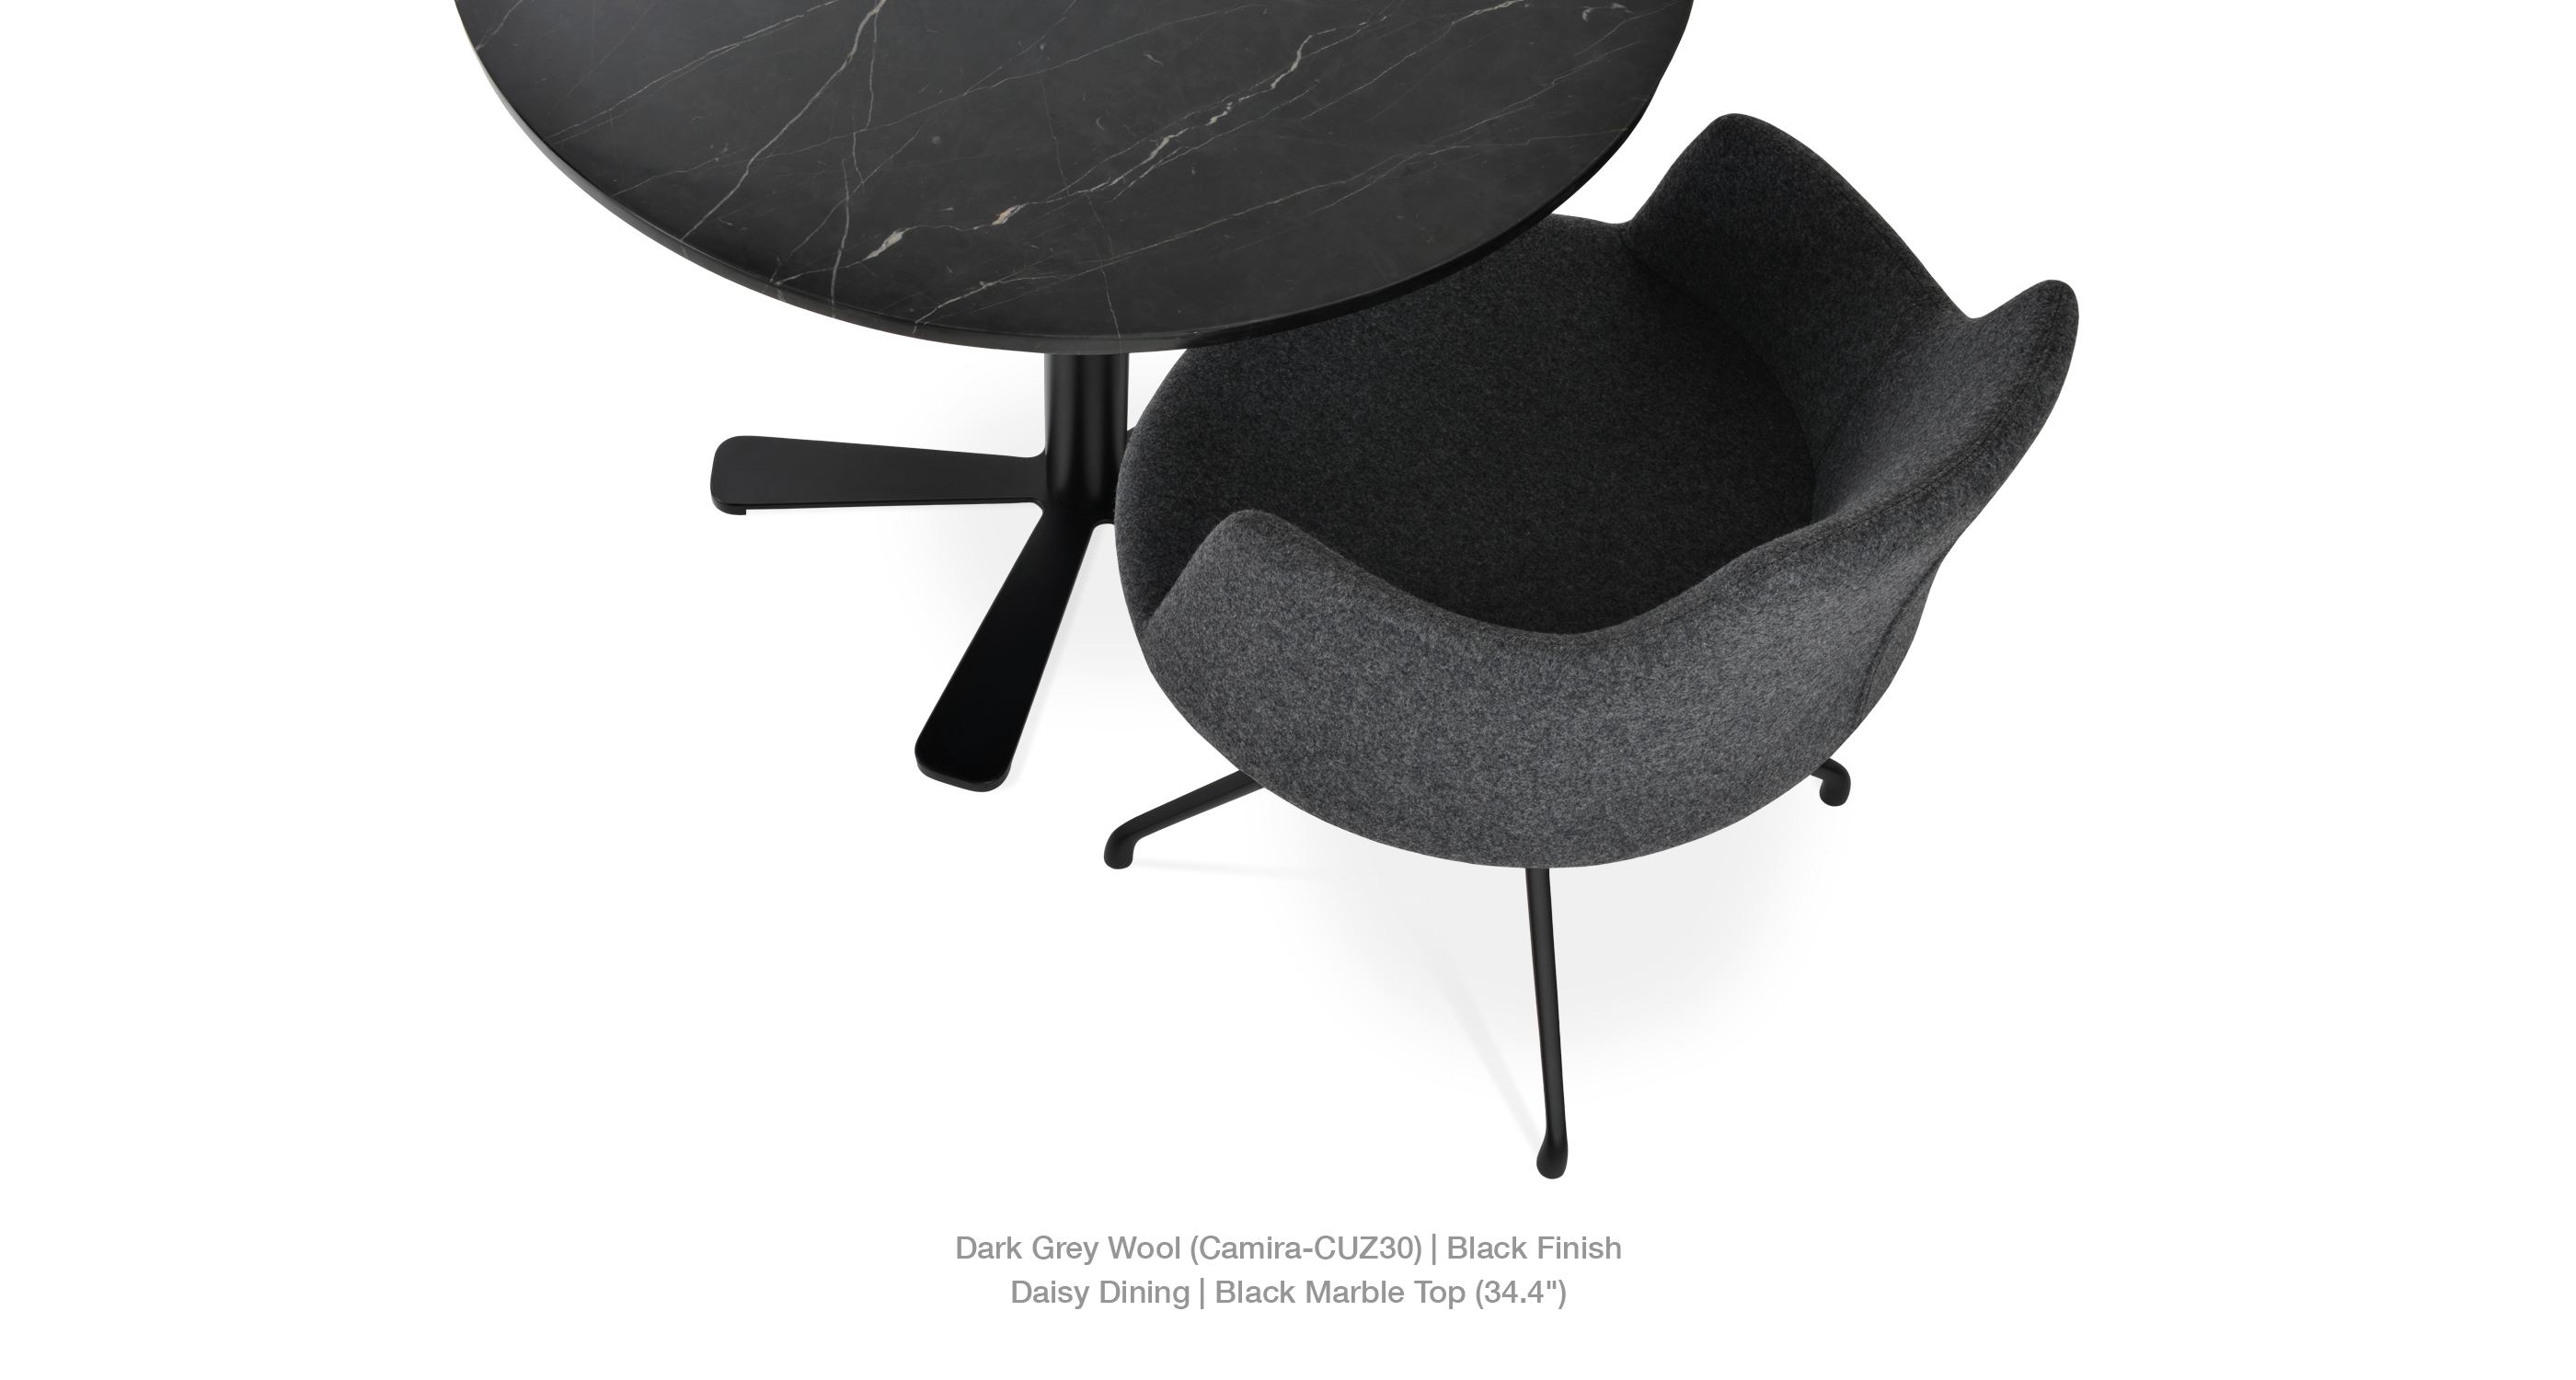 dark grey wool - daisy dining